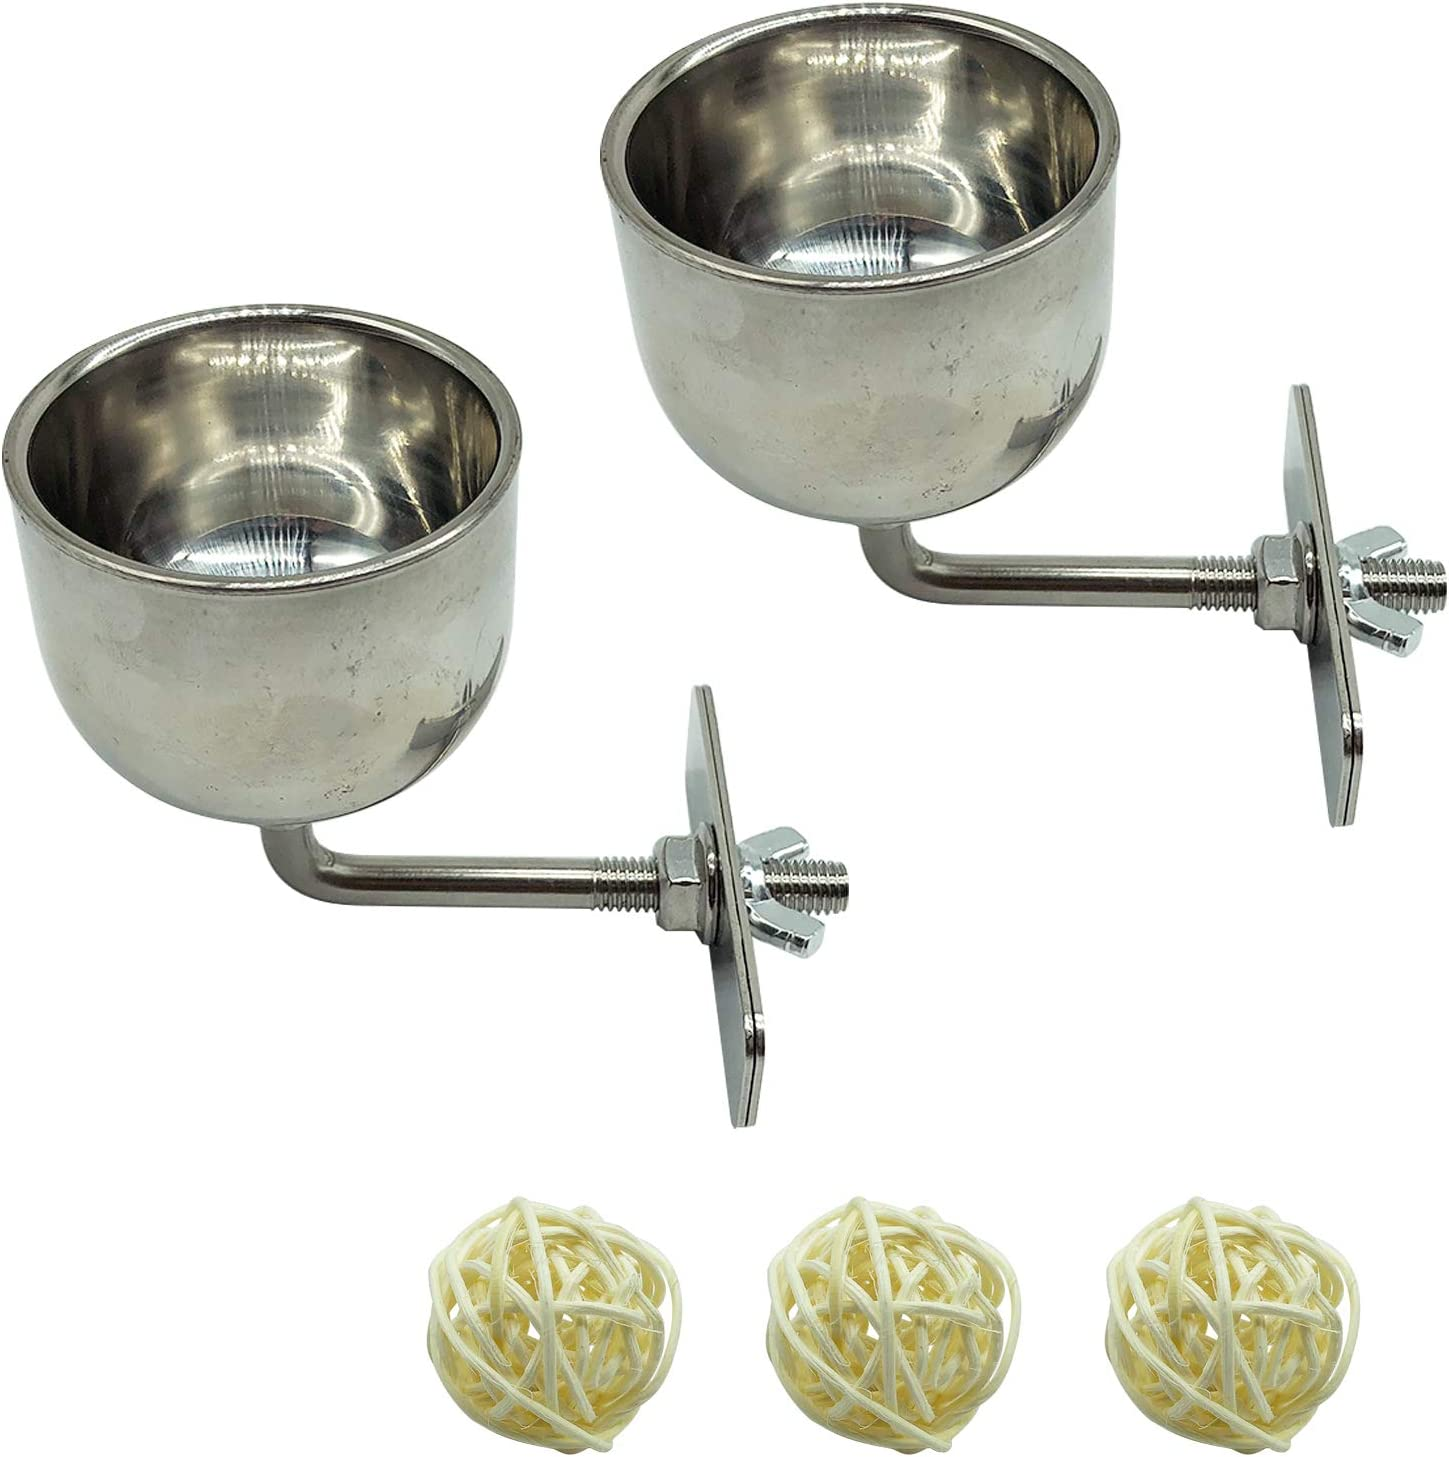 Bird Stainless Steel Food Bowl with 3 Willow Balls Feeding Cups Standing Platform Water and Food Dishes for Parakeets Cockatiels Budgies Conures Lovebirds 2 PCS